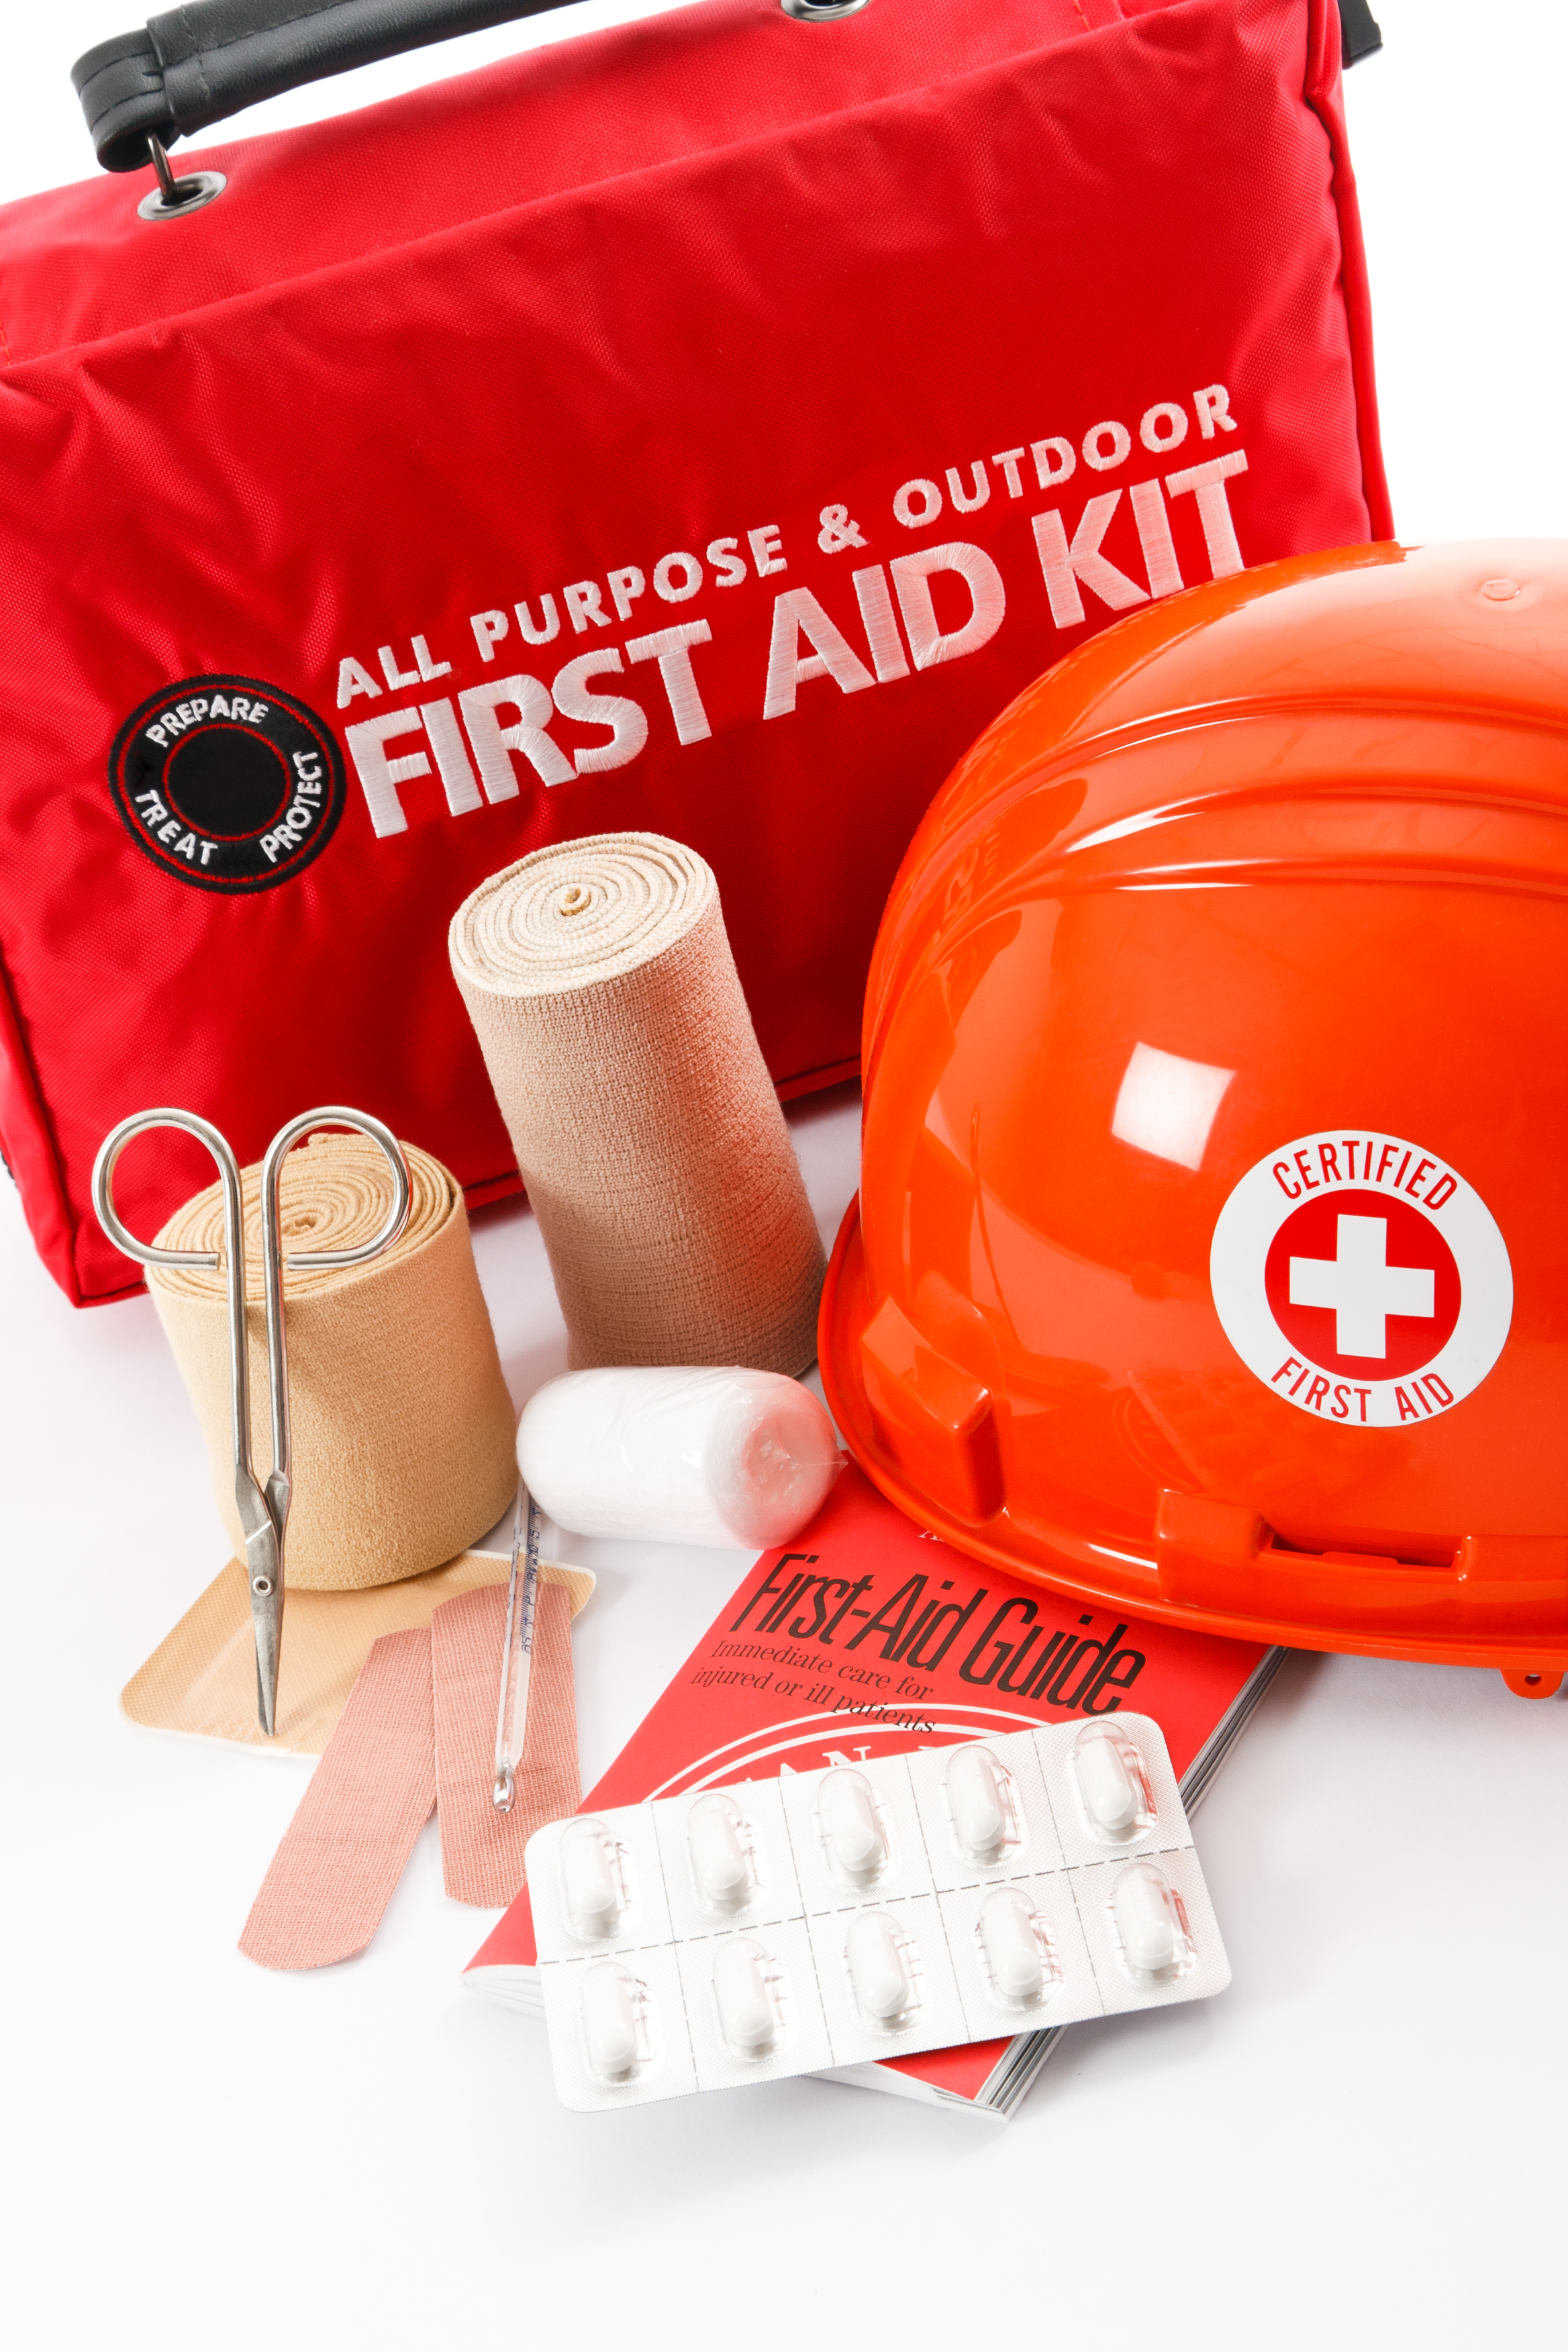 First Aid kit with bandages and scissors